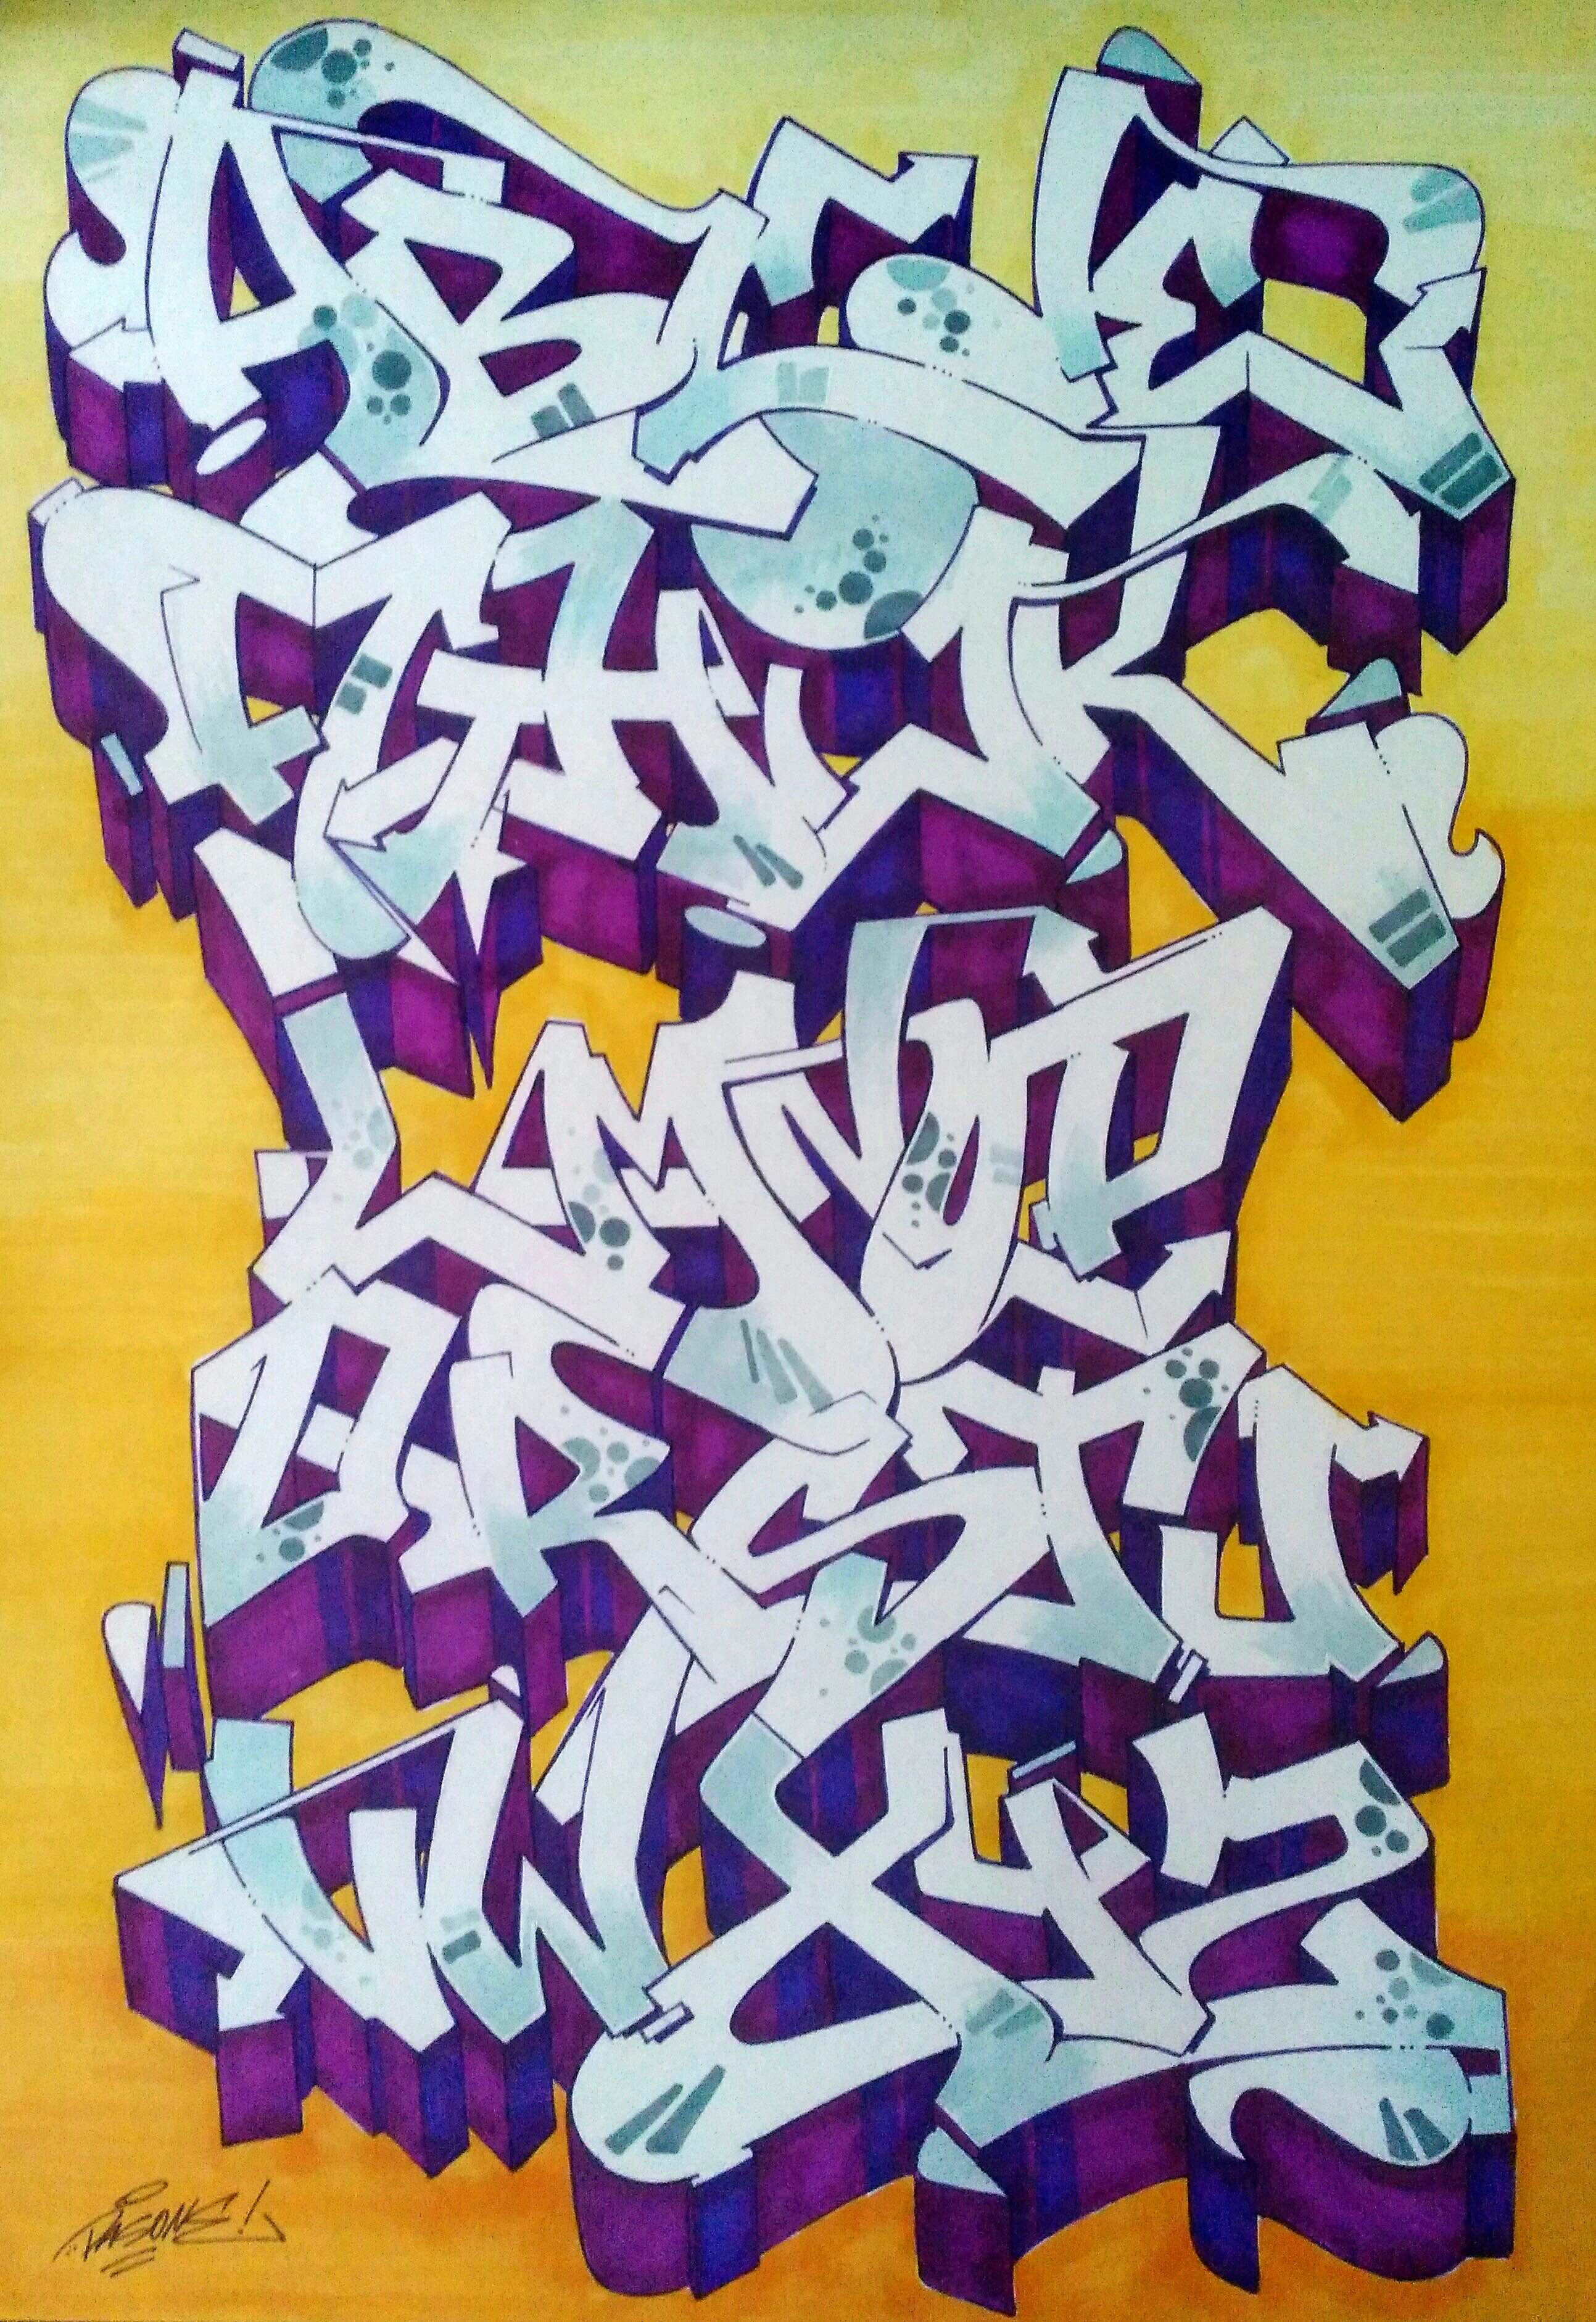 Graffiti alphabet 26 letters of style 4 bombing science - Graffiti alfabet ...